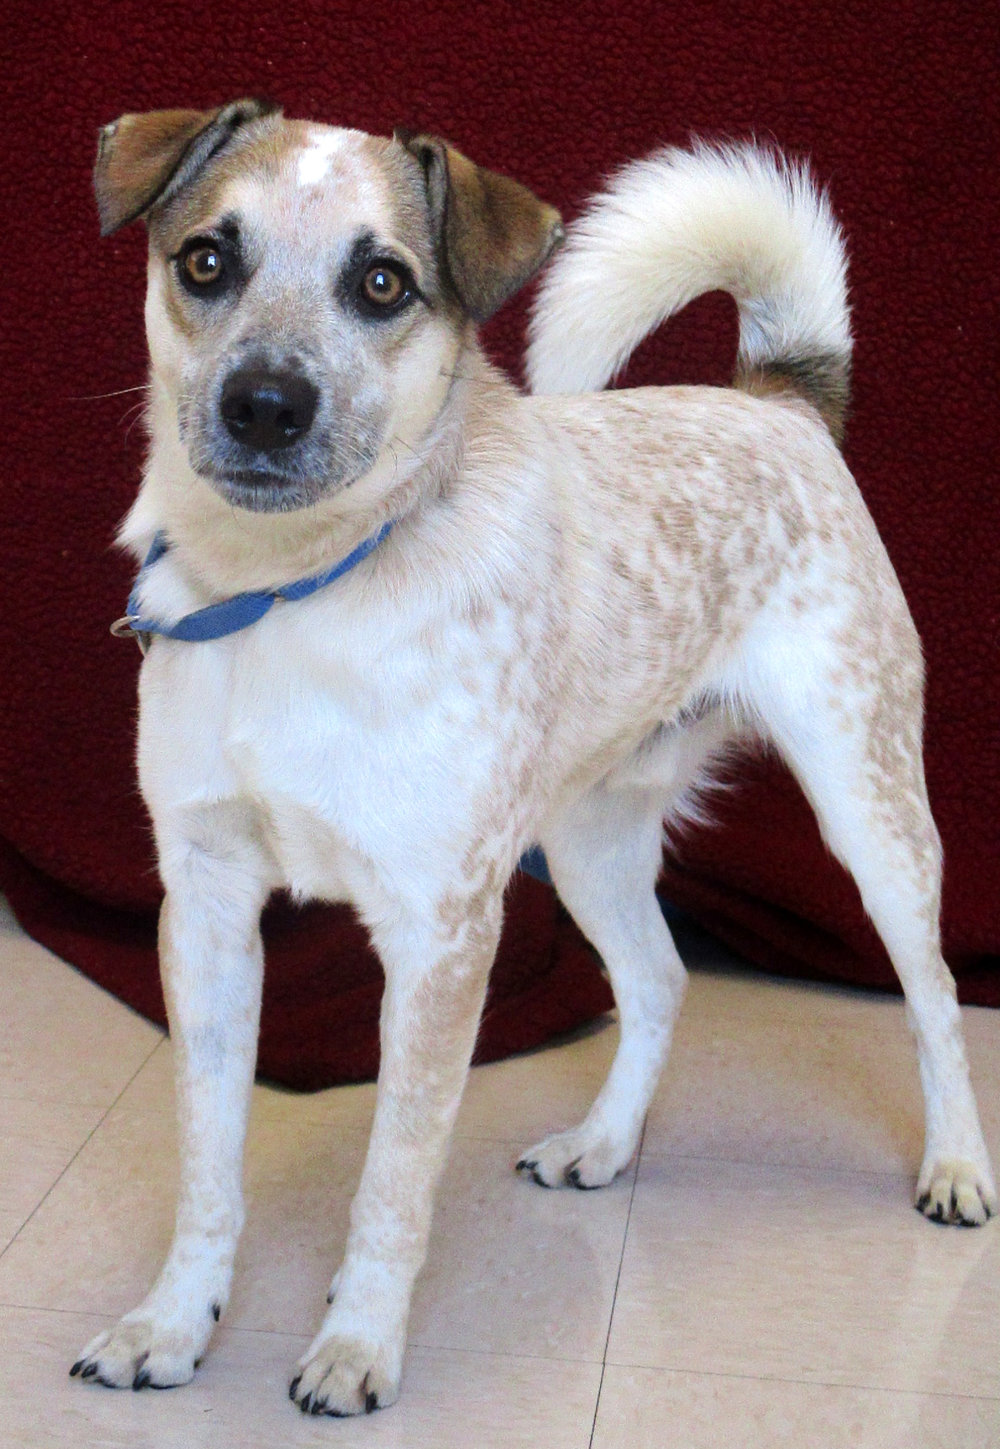 Hank is a 11 month old Blue Heeler/Border Collie mix. He is a highly intelligent boy that needs a family that is very active and will expend his energy. Hank loves to play with his toys and is very food motivated. He will do just about anything for a treat, so positive reinforcement comes easy to him.